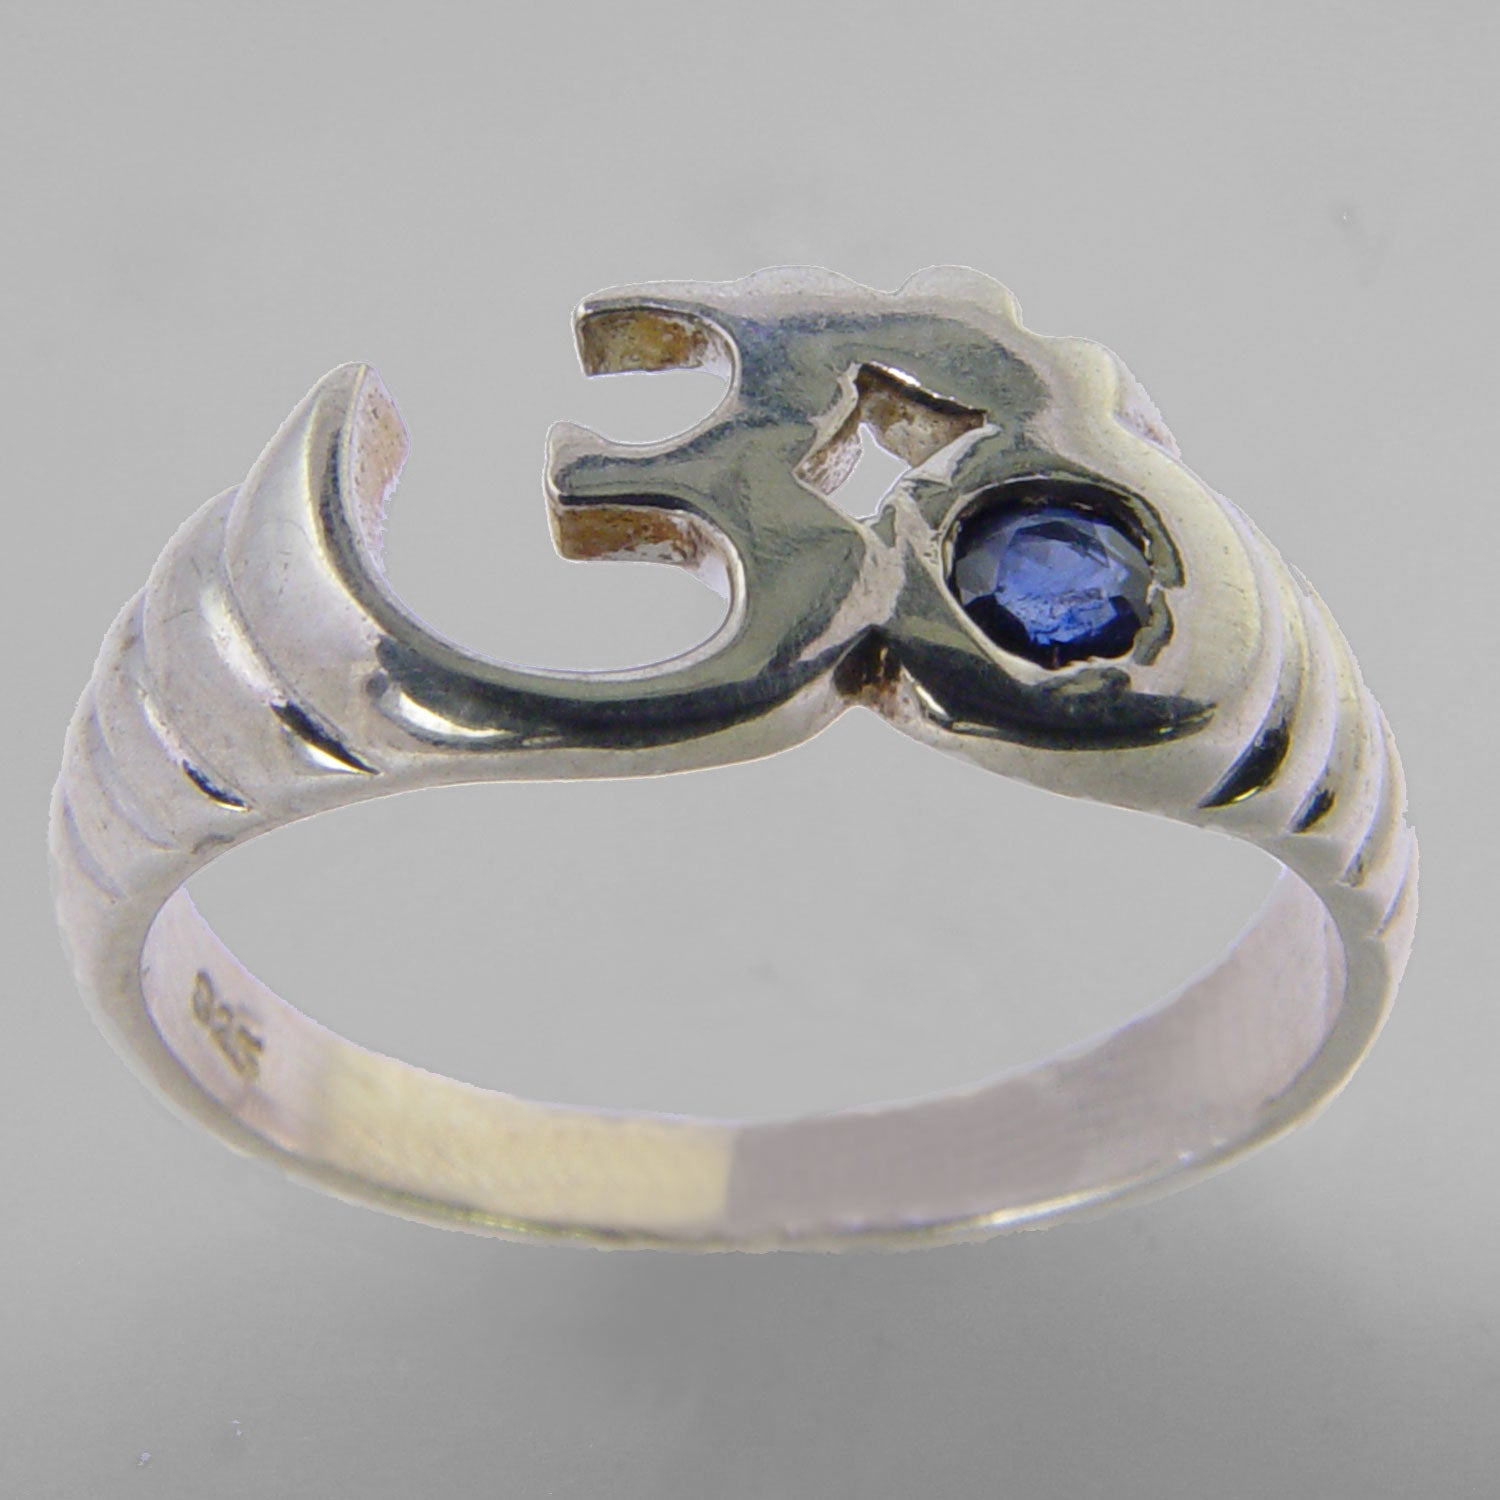 Aum Ring with Small Faceted Blue Sapphire in Sterling Silver, Size 7.5